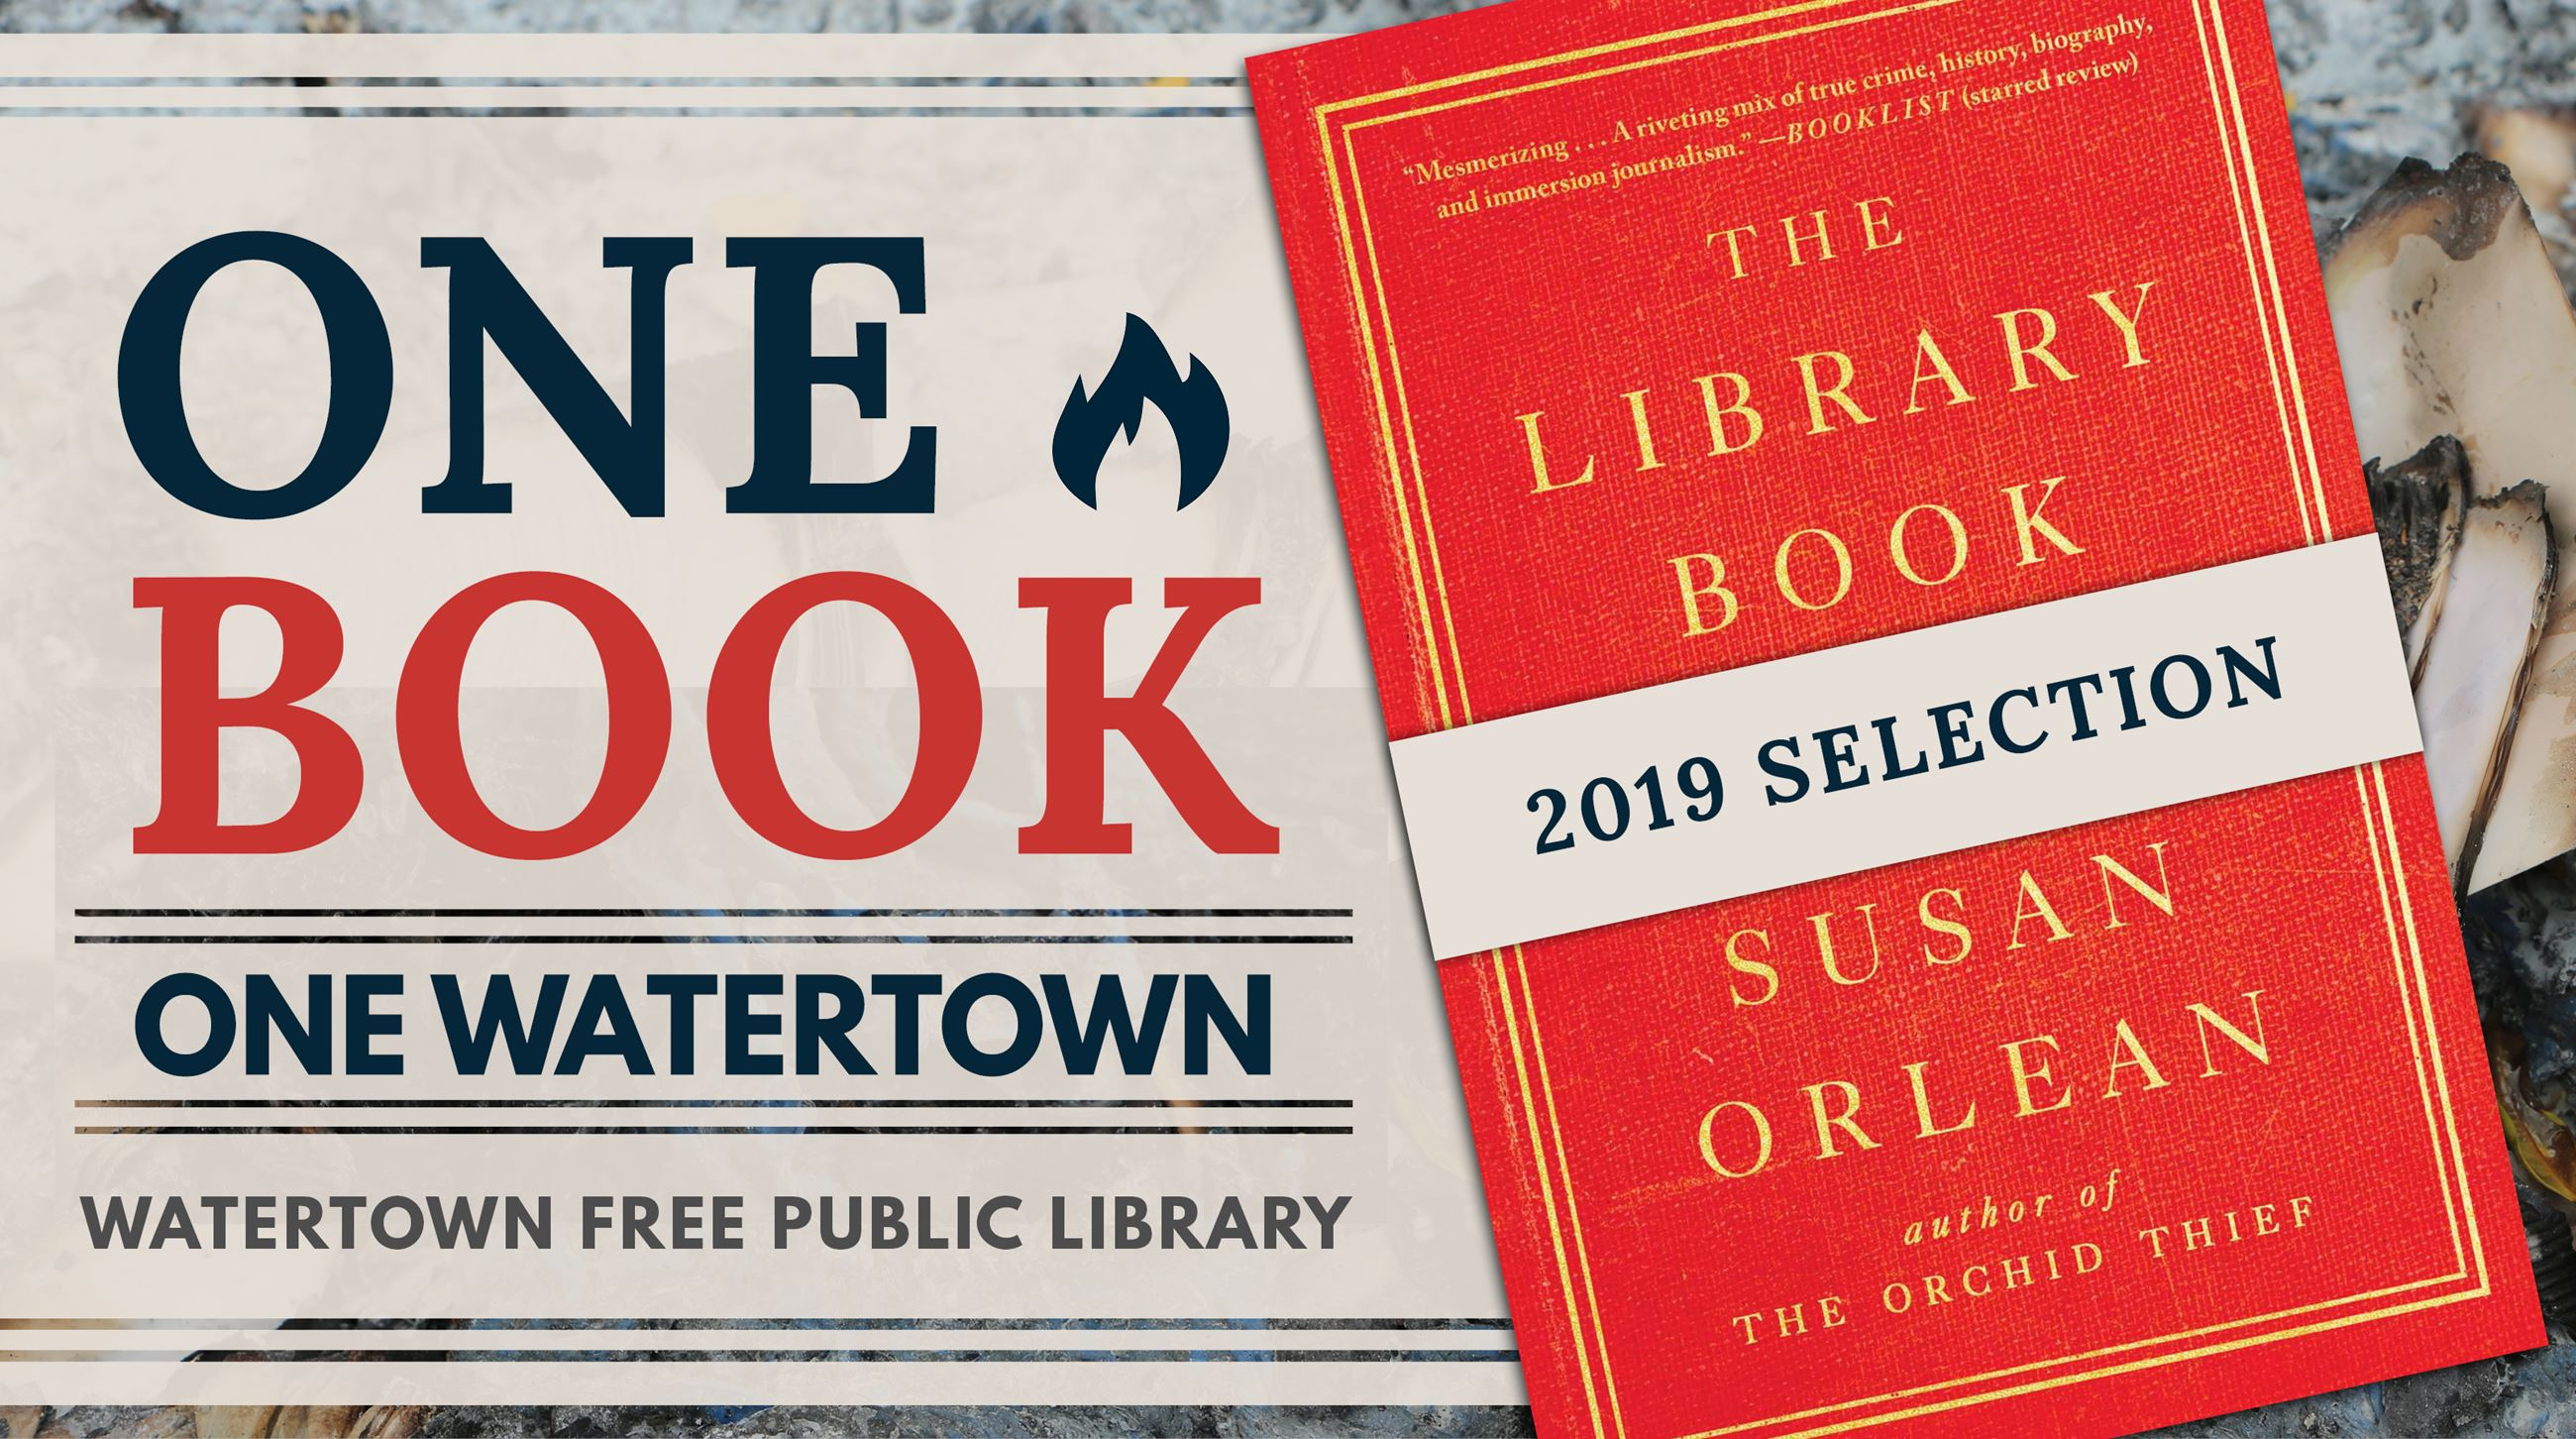 One Book, One Watertown 2019 selection is The Library Book by Susan Orlean